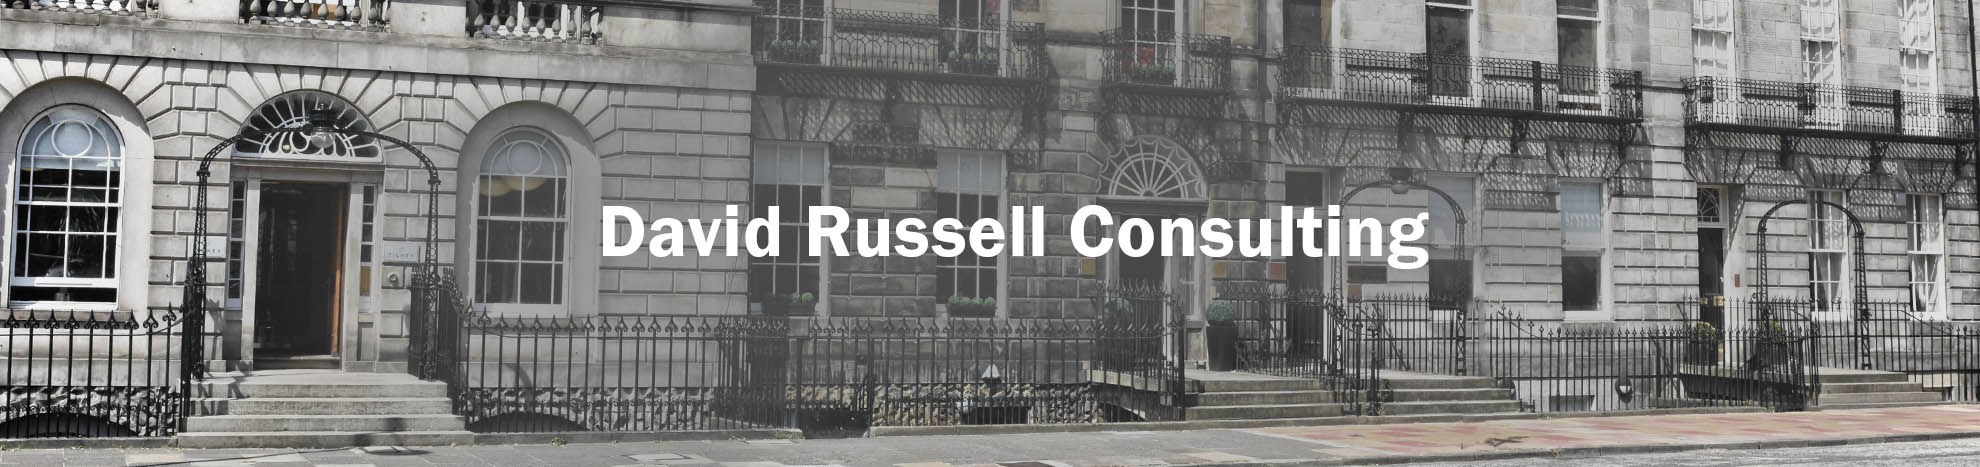 David Russell Consulting